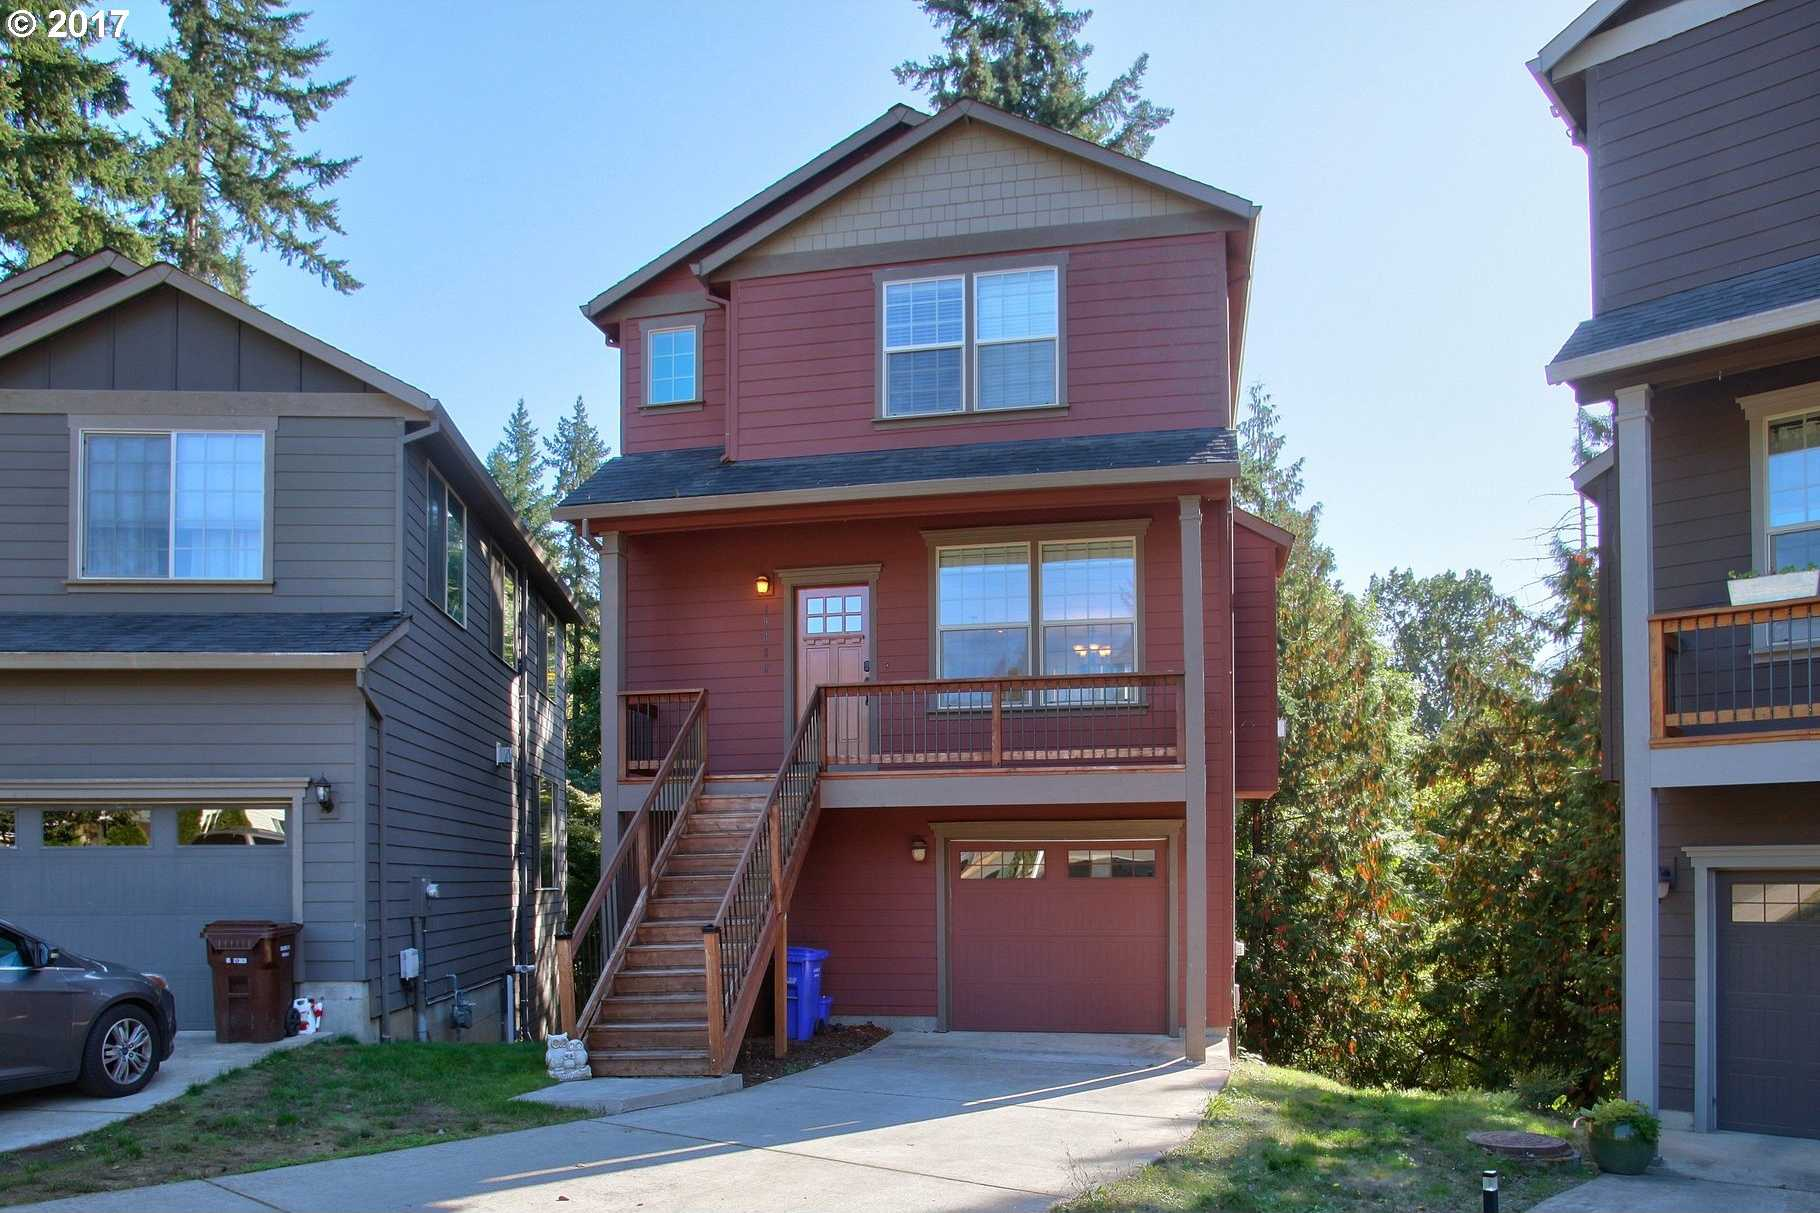 $349,000 - 3Br/3Ba -  for Sale in Milwaukie